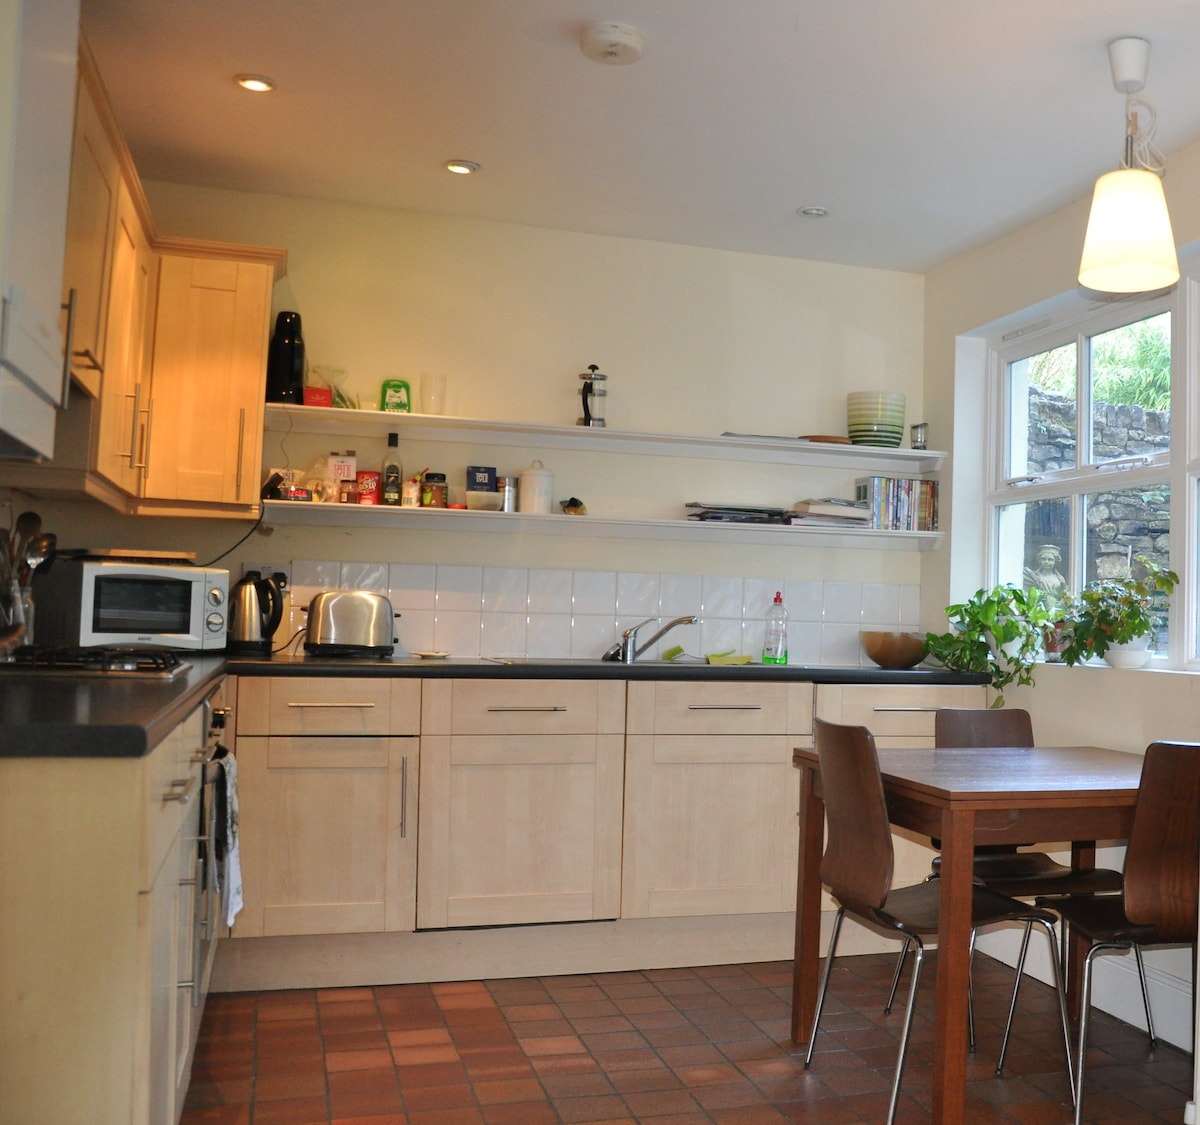 Fitted Kitchen with oven, hob, microwave, fridge dishwasher and washing machine